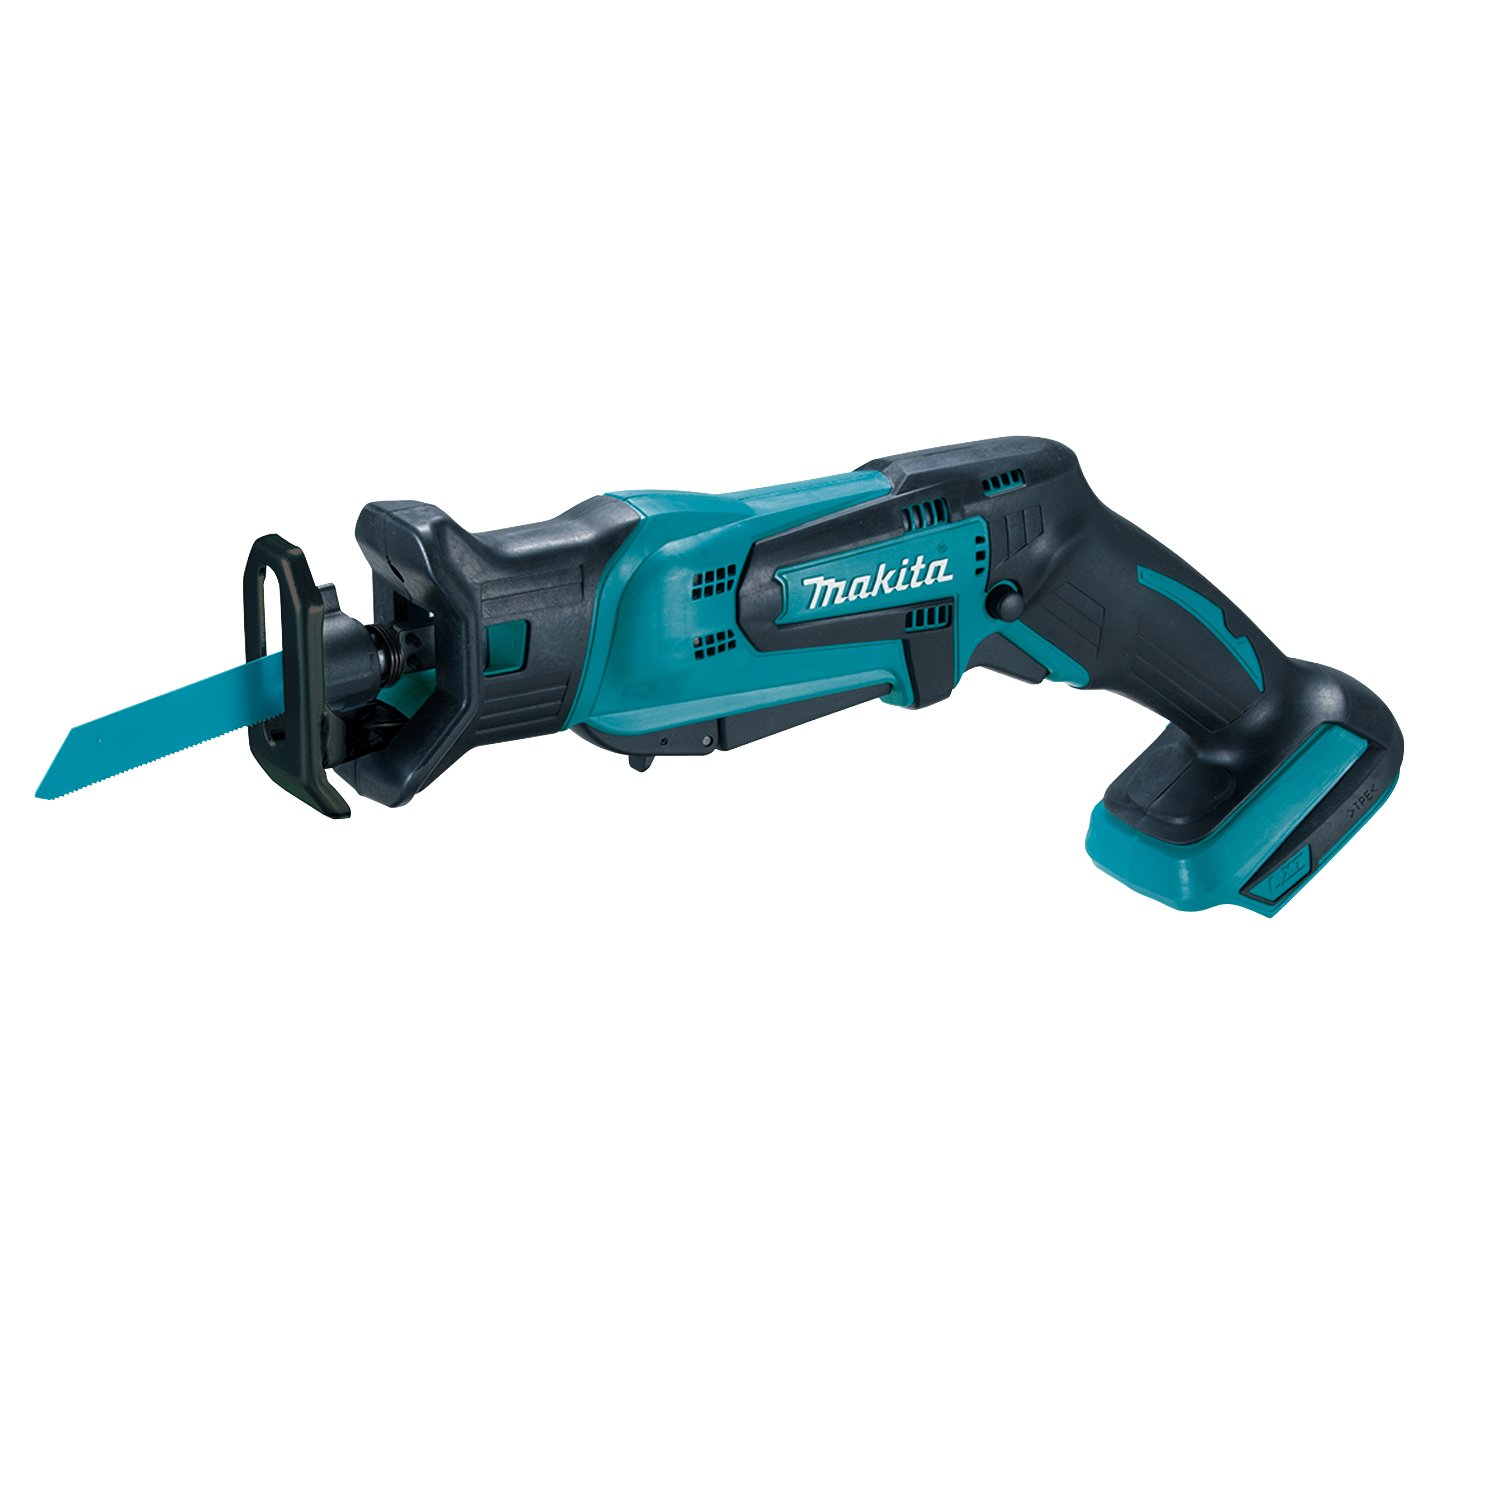 Makita XRJ01Z 18 Volt LXT Lithium Ion Cordless Compact Reciprocating Saw Tool Only No Battery